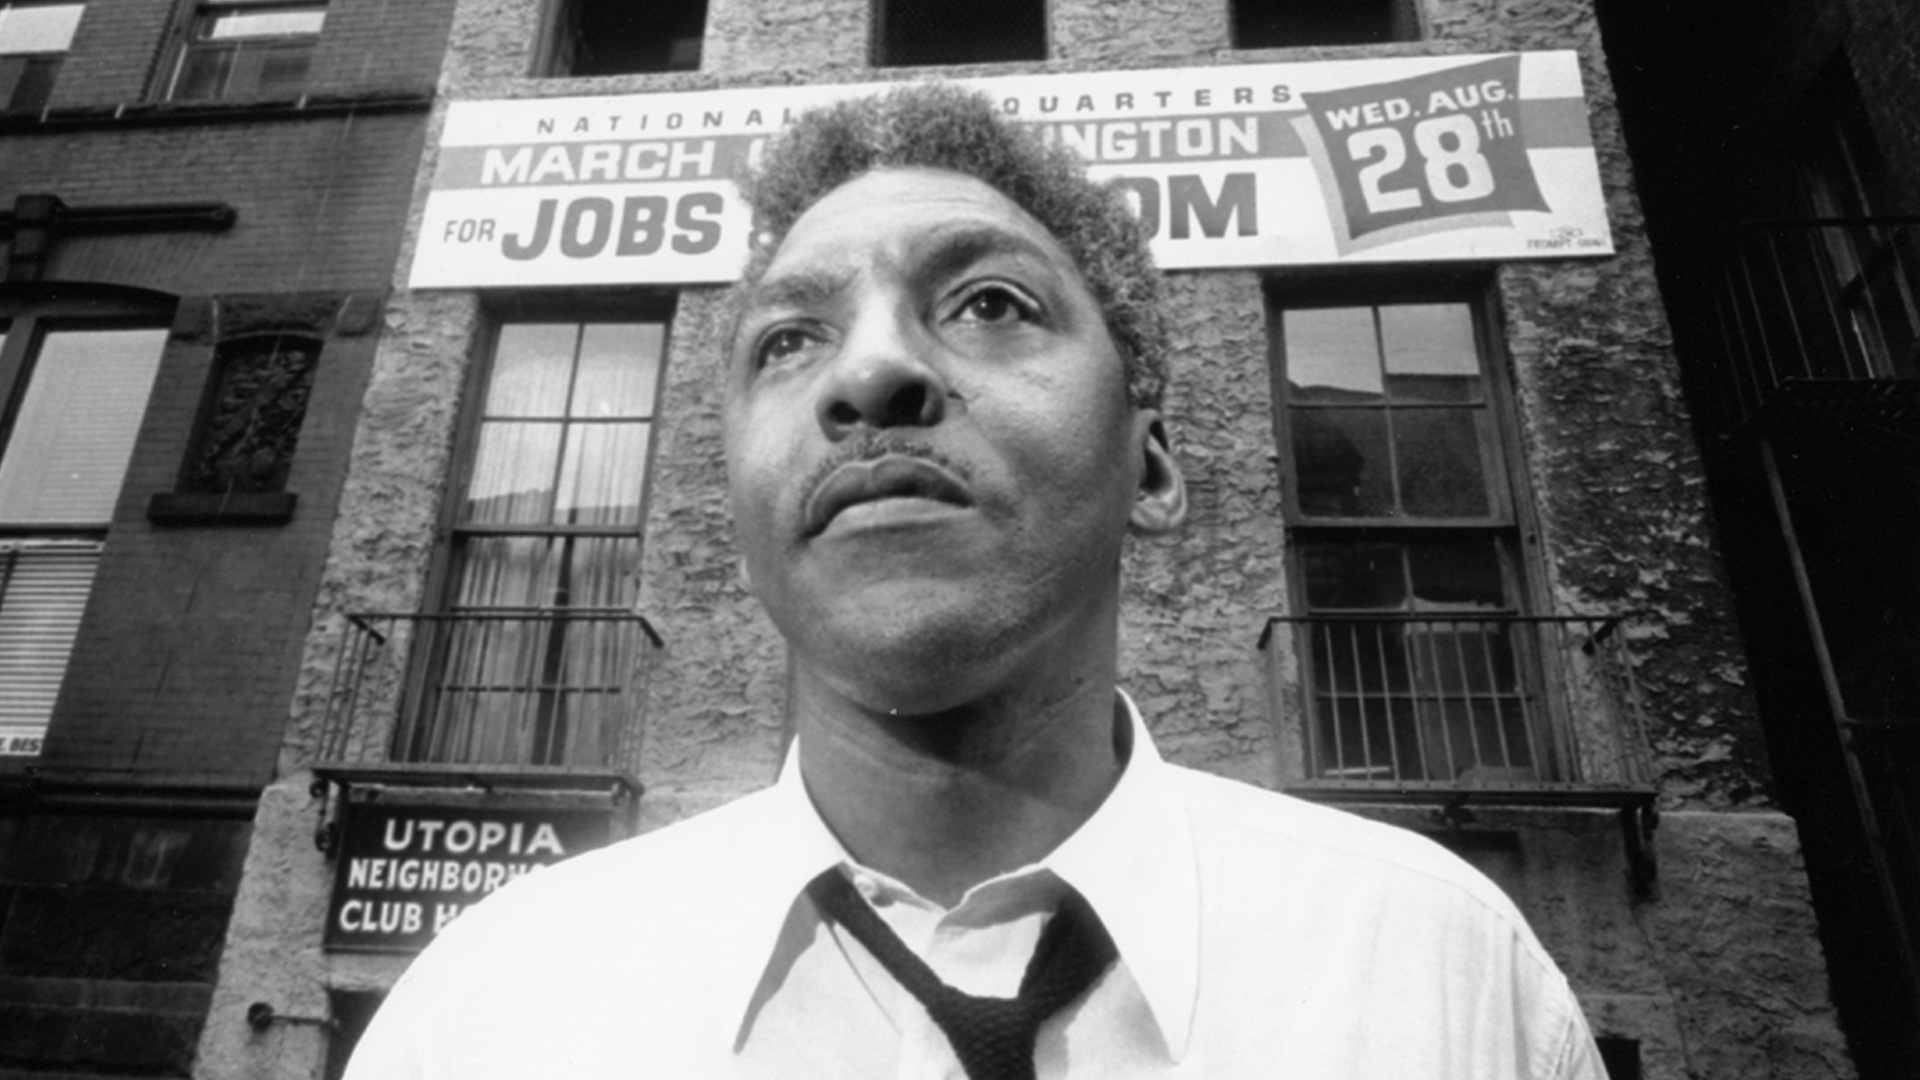 Brother Outsider - This Sundance Grand Jury Prize nominee chronicles the life of civil rights activist Bayard Rustin, who, among many contributions to the cause, is best known for organizing the 1963 March on Washington, D.C., involving hundreds of thousands of people.